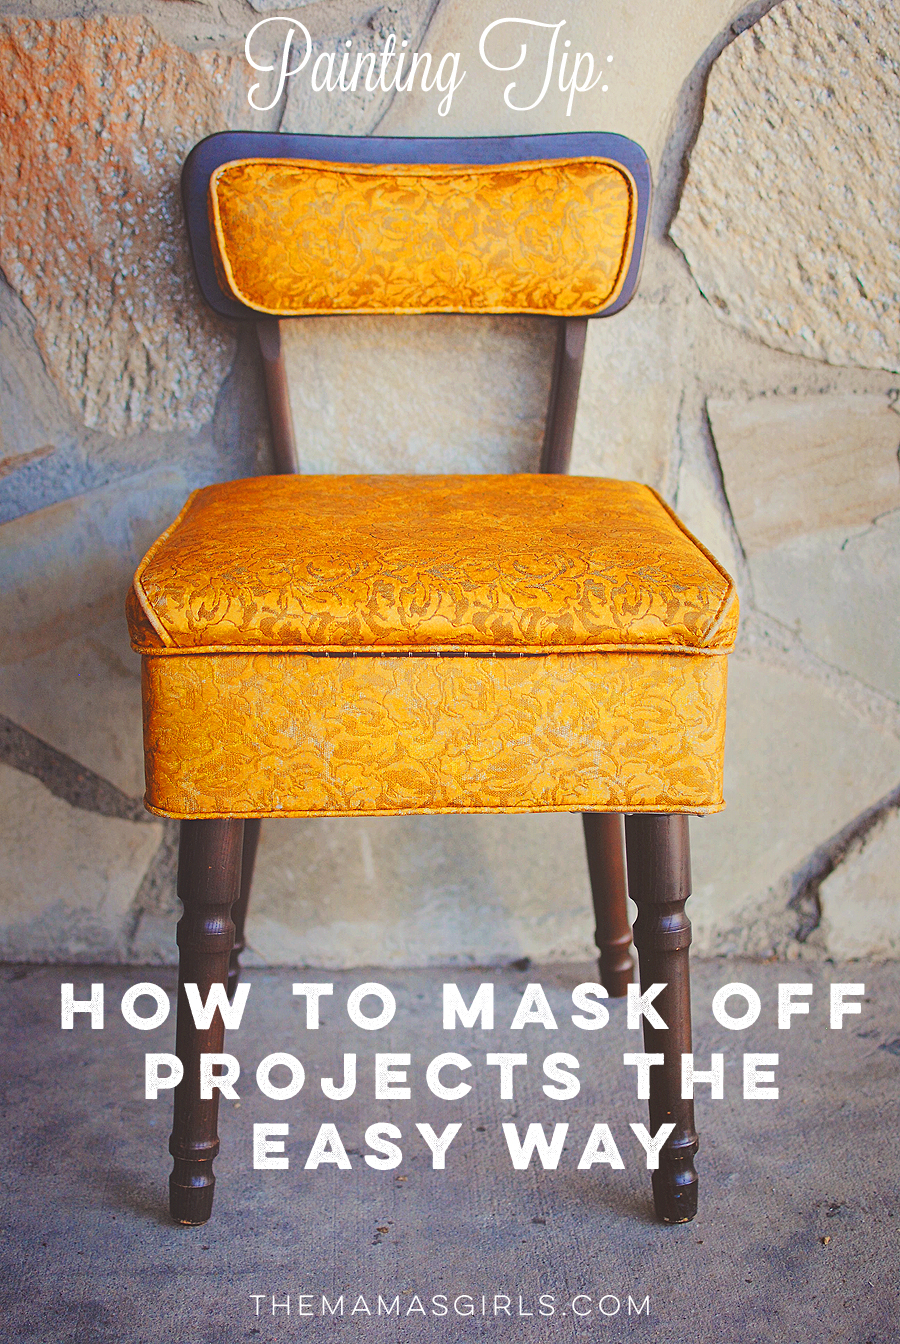 How to mask off projects the easy way - clever painting tip